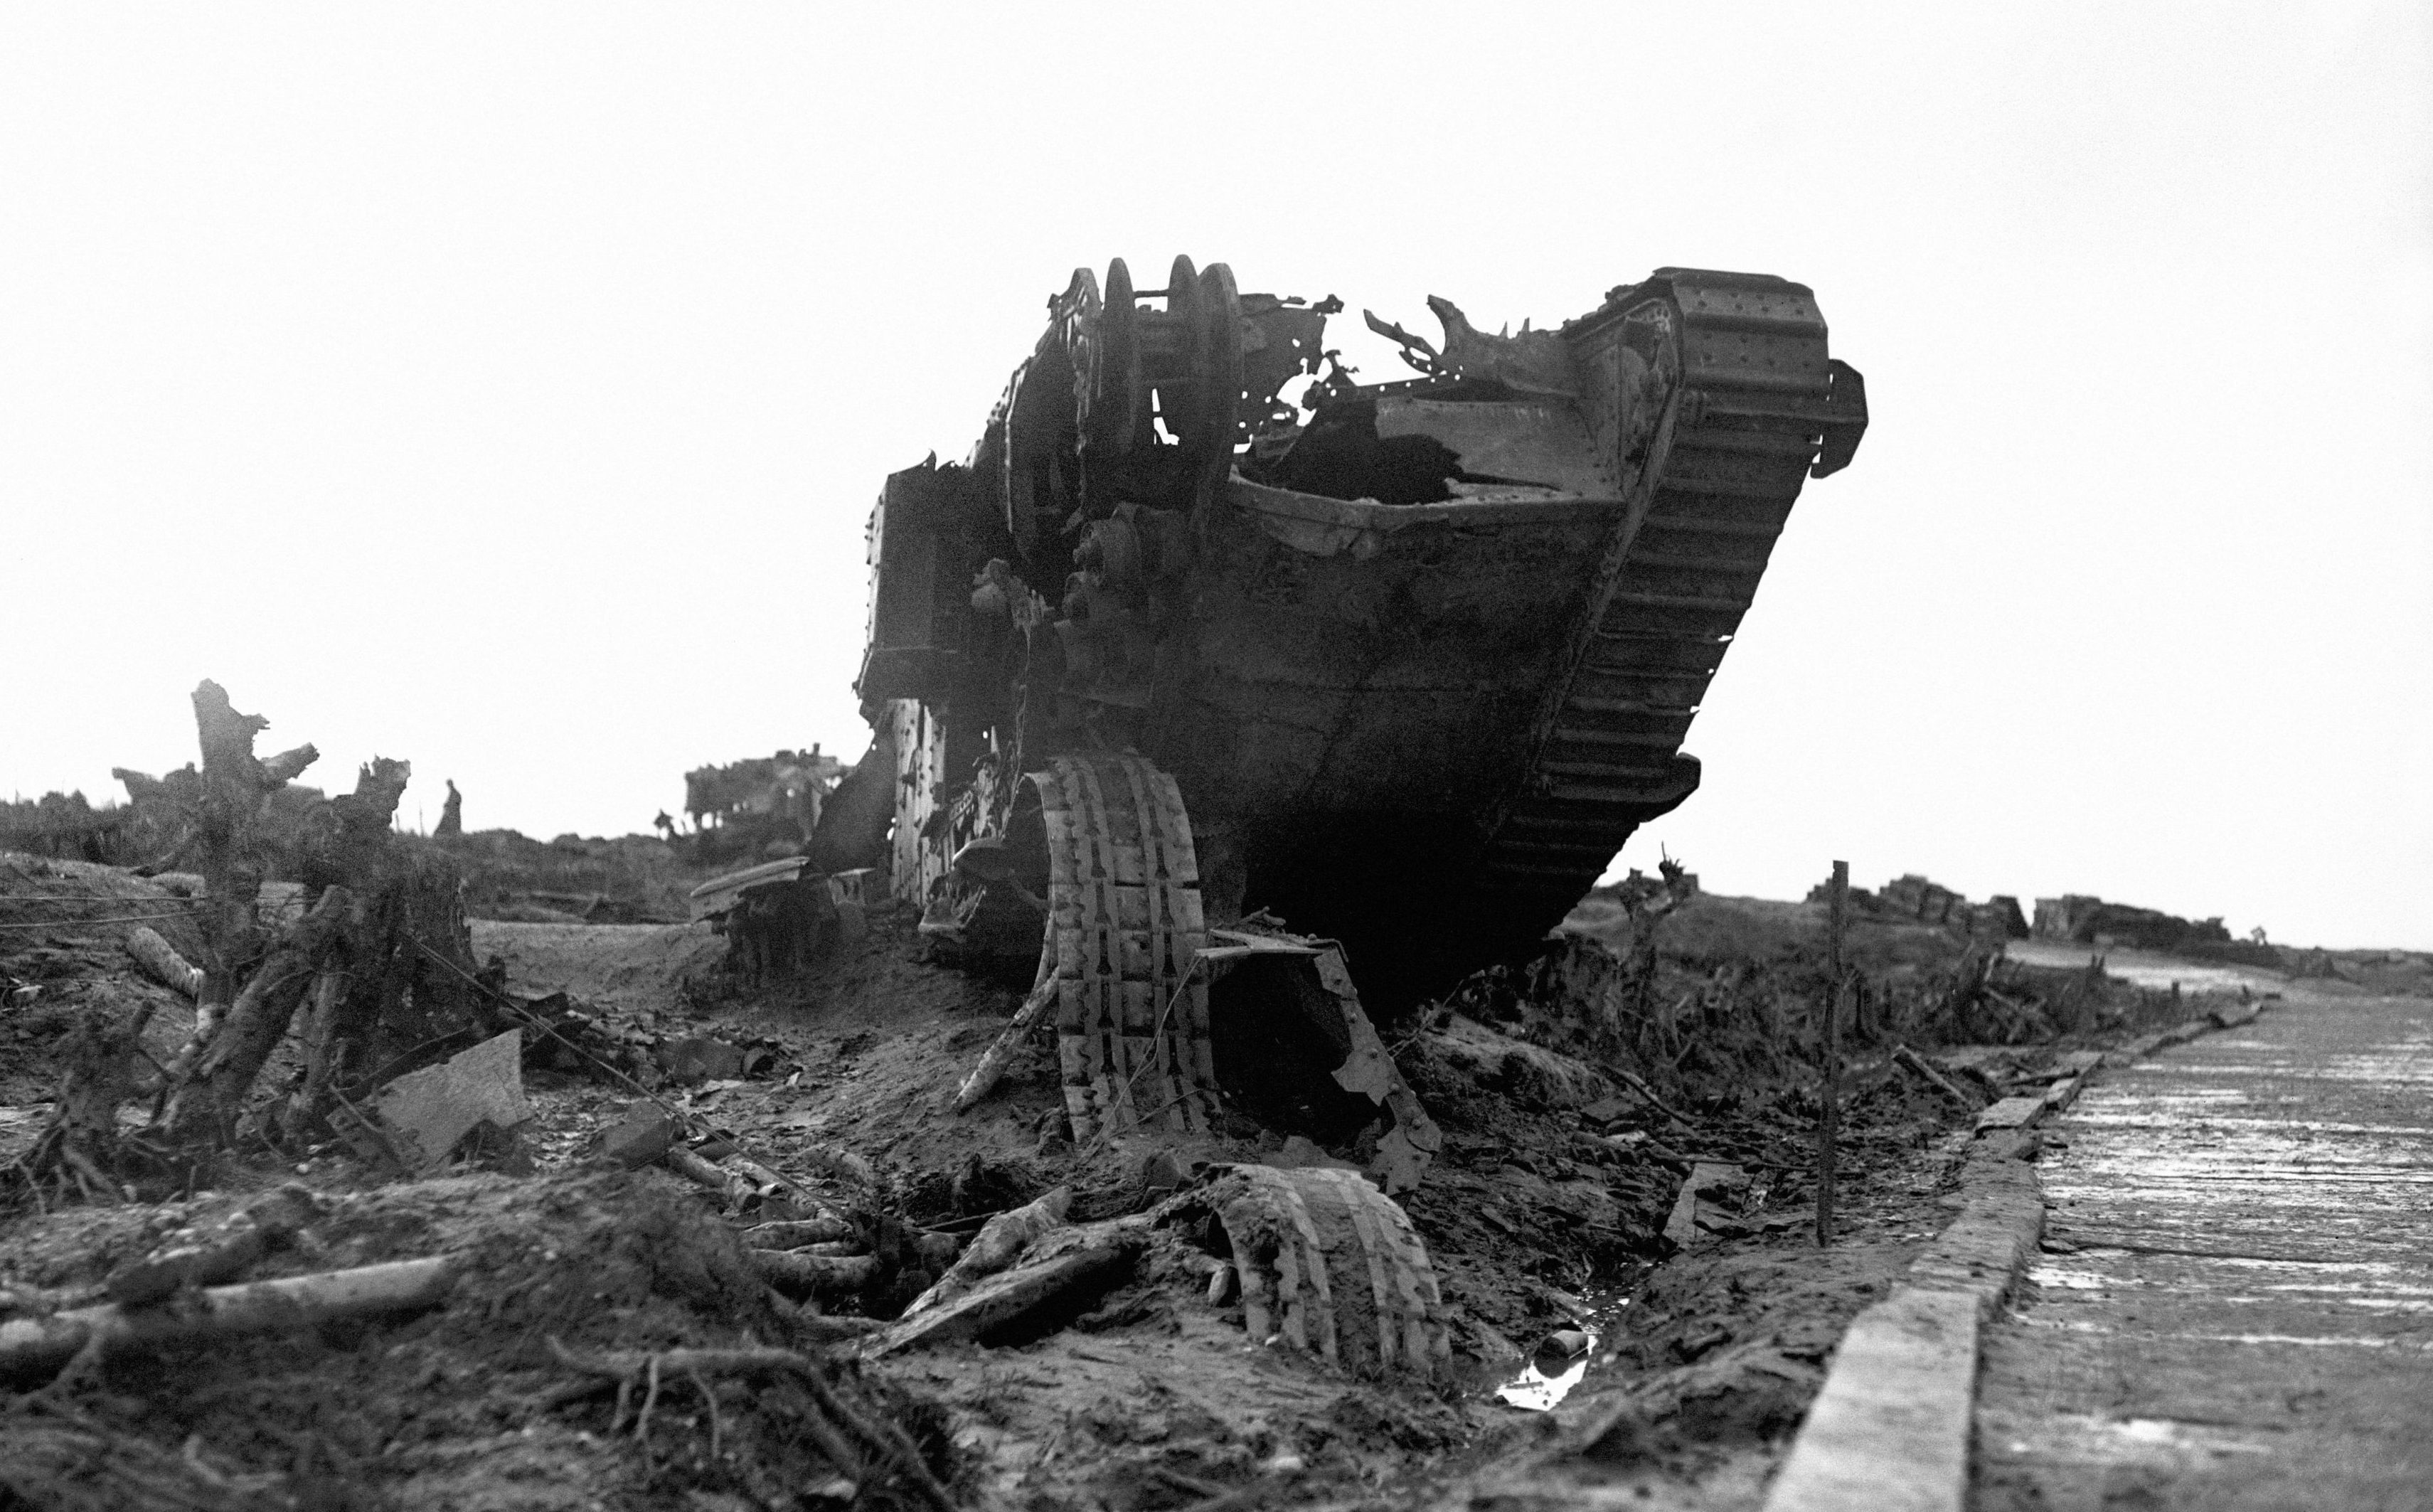 The wreckage of a British tank beside the Menin Road near Ypres.